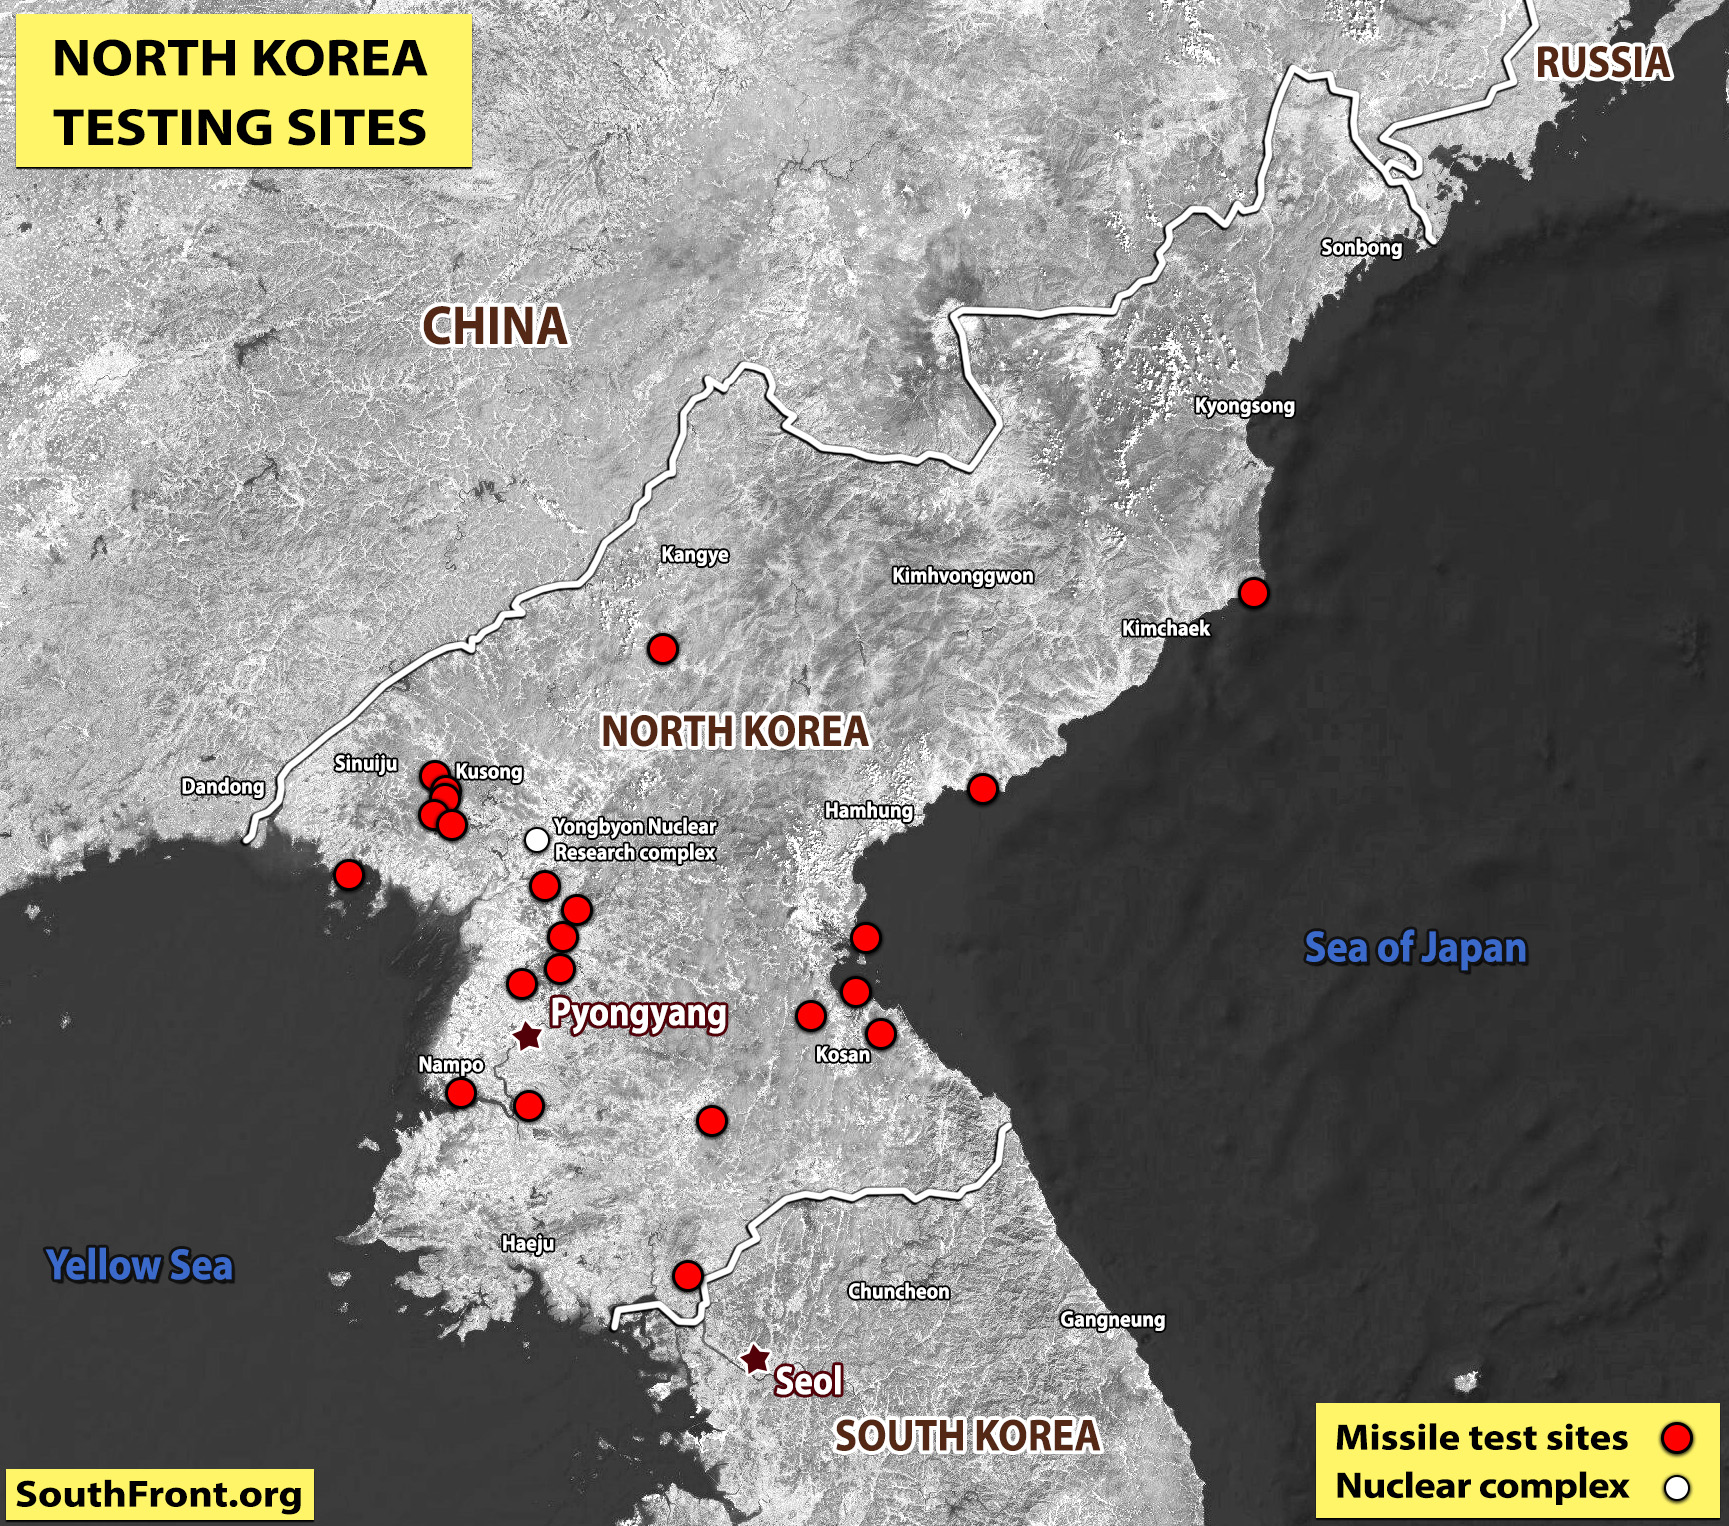 West Outraged By North Korea Testing Cruise Missile With Potential Nuclear Capabilities